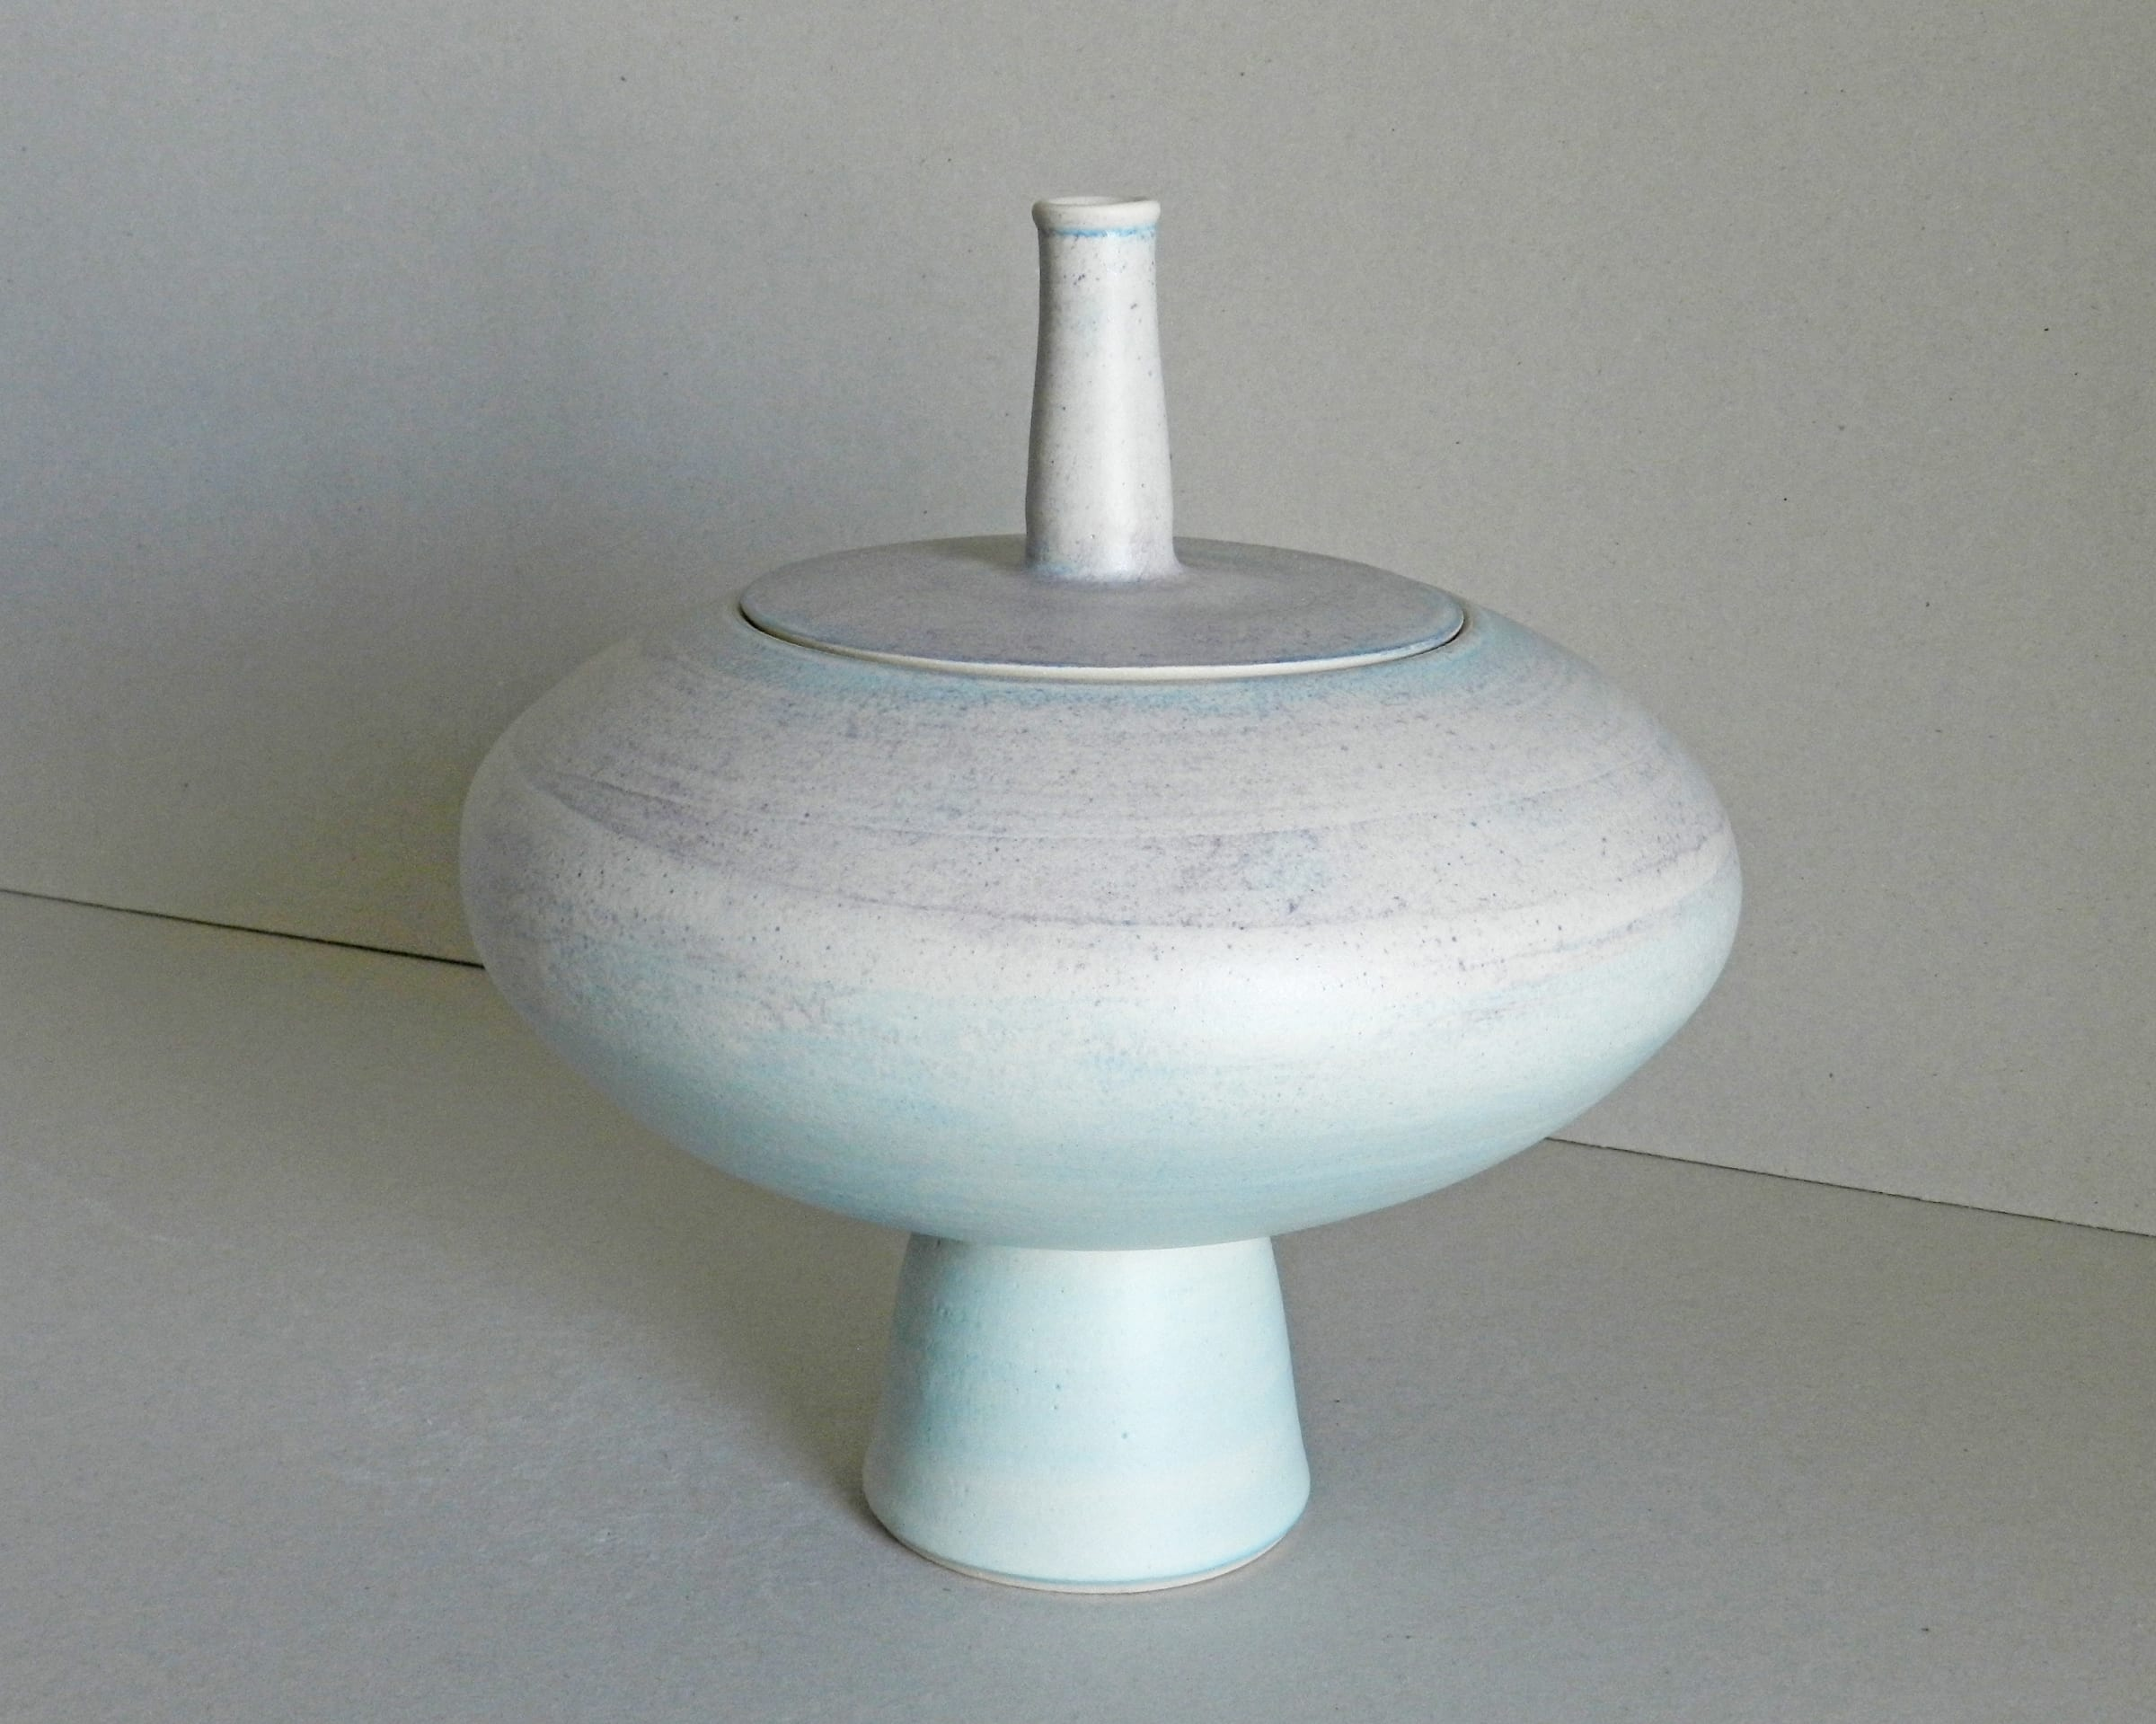 """<span class=""""link fancybox-details-link""""><a href=""""/artists/243-christine-feiler/works/6868-christine-feiler-lidded-pot-2019/"""">View Detail Page</a></span><div class=""""artist""""><strong>Christine Feiler</strong></div> b. 1948 <div class=""""title""""><em>Lidded pot</em>, 2019</div> <div class=""""signed_and_dated"""">Ceramicist mark on base</div> <div class=""""medium"""">Stoneware with enamels</div><div class=""""price"""">£320.00</div><div class=""""copyright_line"""">Copyright The Artist</div>"""